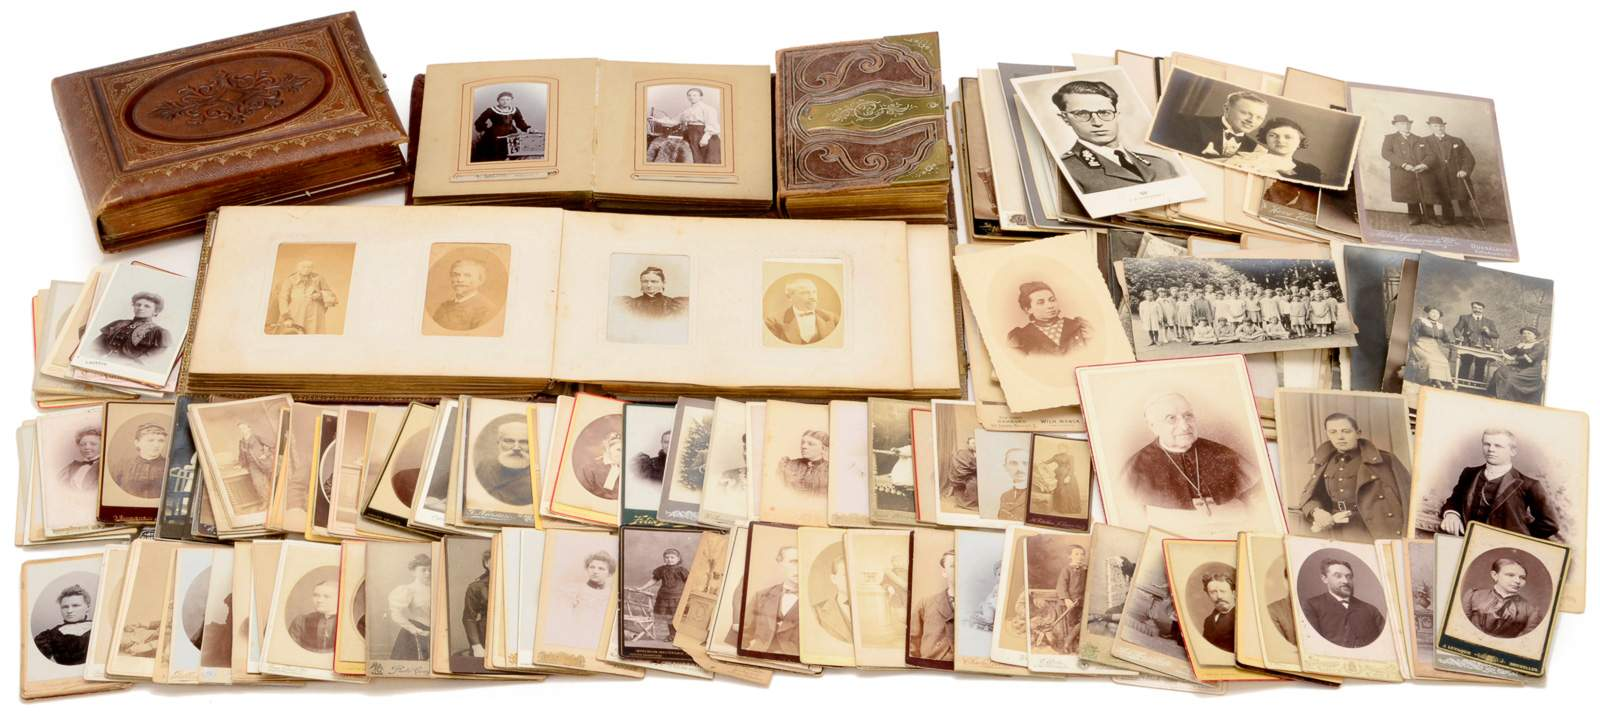 4 Photographic Albums And Cartes De Visite 4 Small Photographic